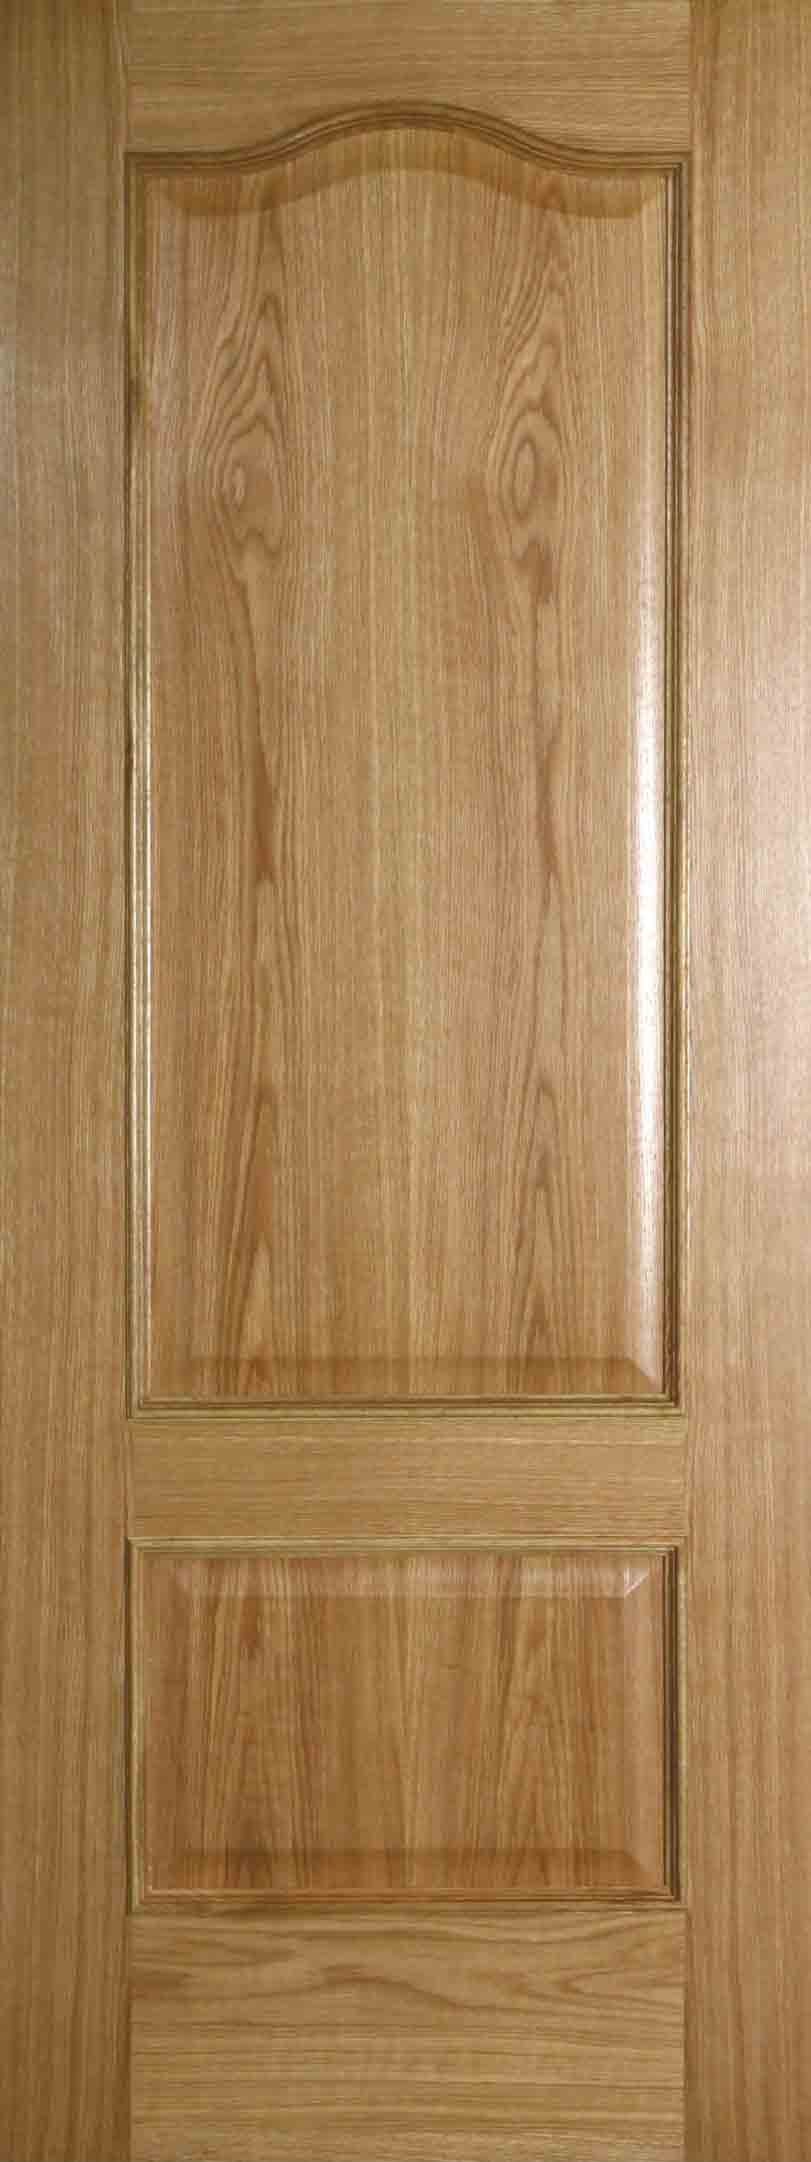 Internal Oak Seville FD30 Fire Door Prefinished & Internal Oak Seville FD30 Fire Door Prefinished | Finewood